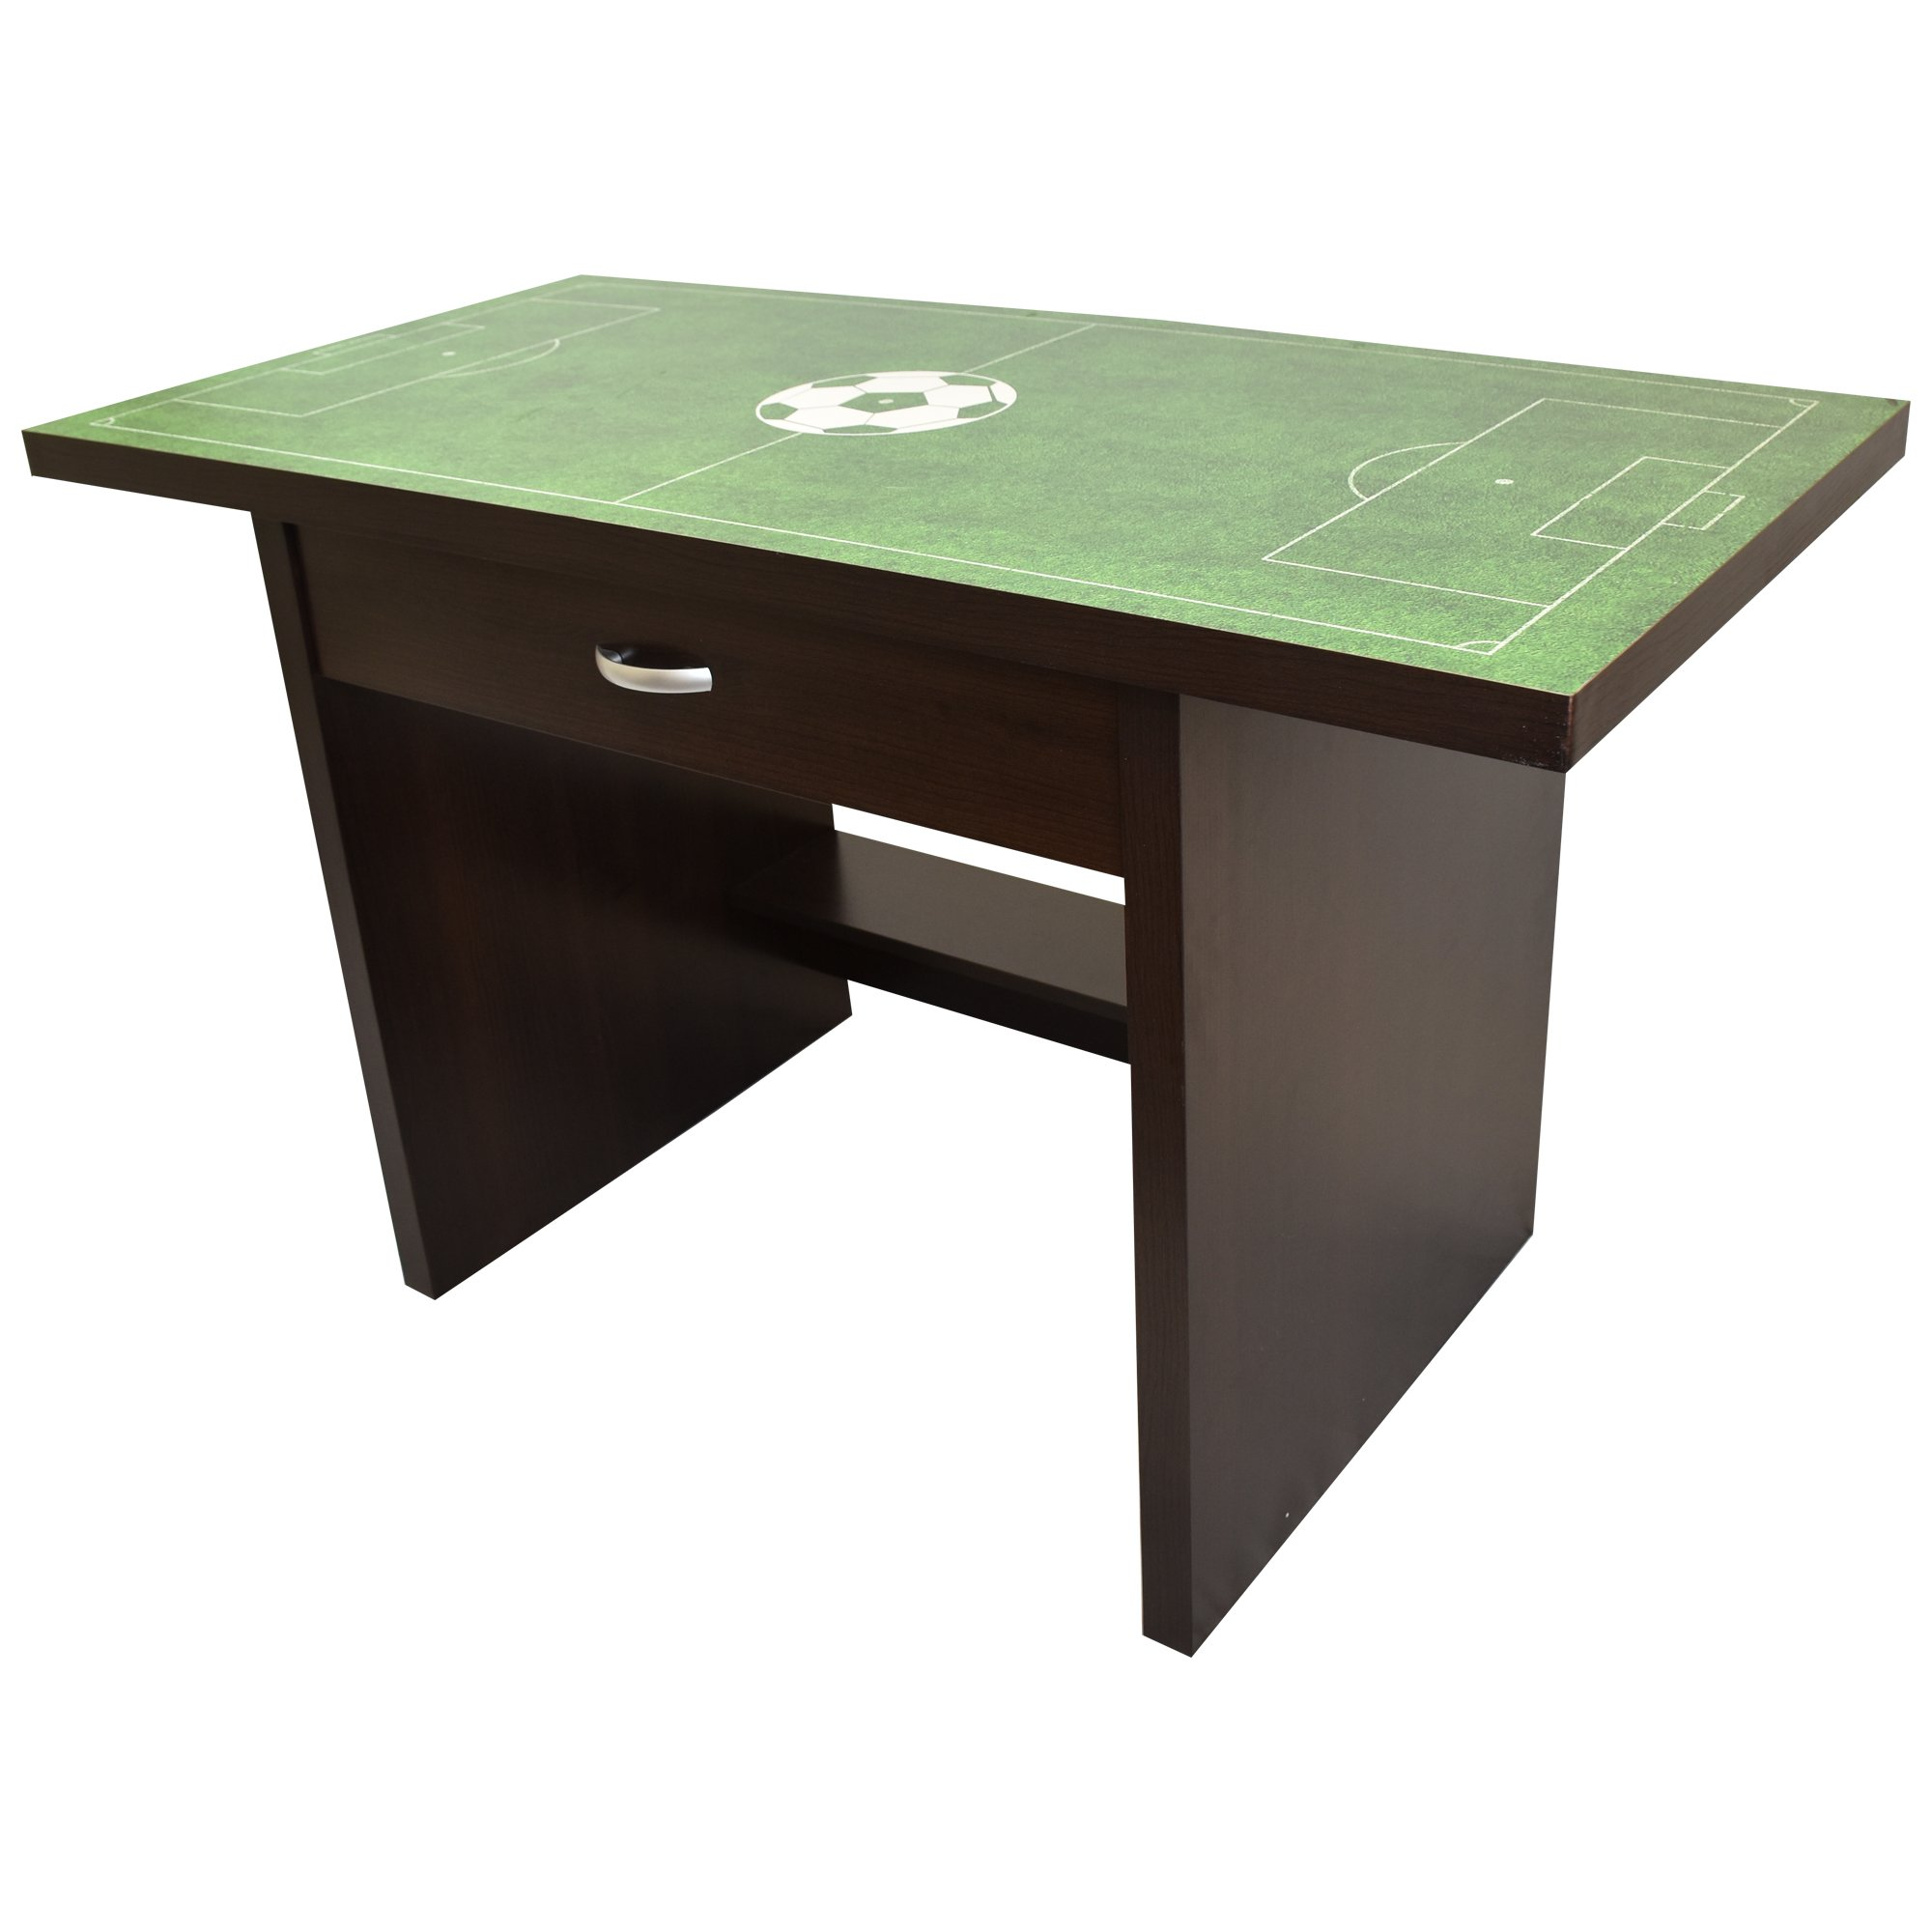 Little Partners Kids Soccer Fan Desk - Activity Play Table with Sports-Themed Graphics for Playroom, Daycare, Preschool | Durable Wood Construction with Drawer by Little Partners